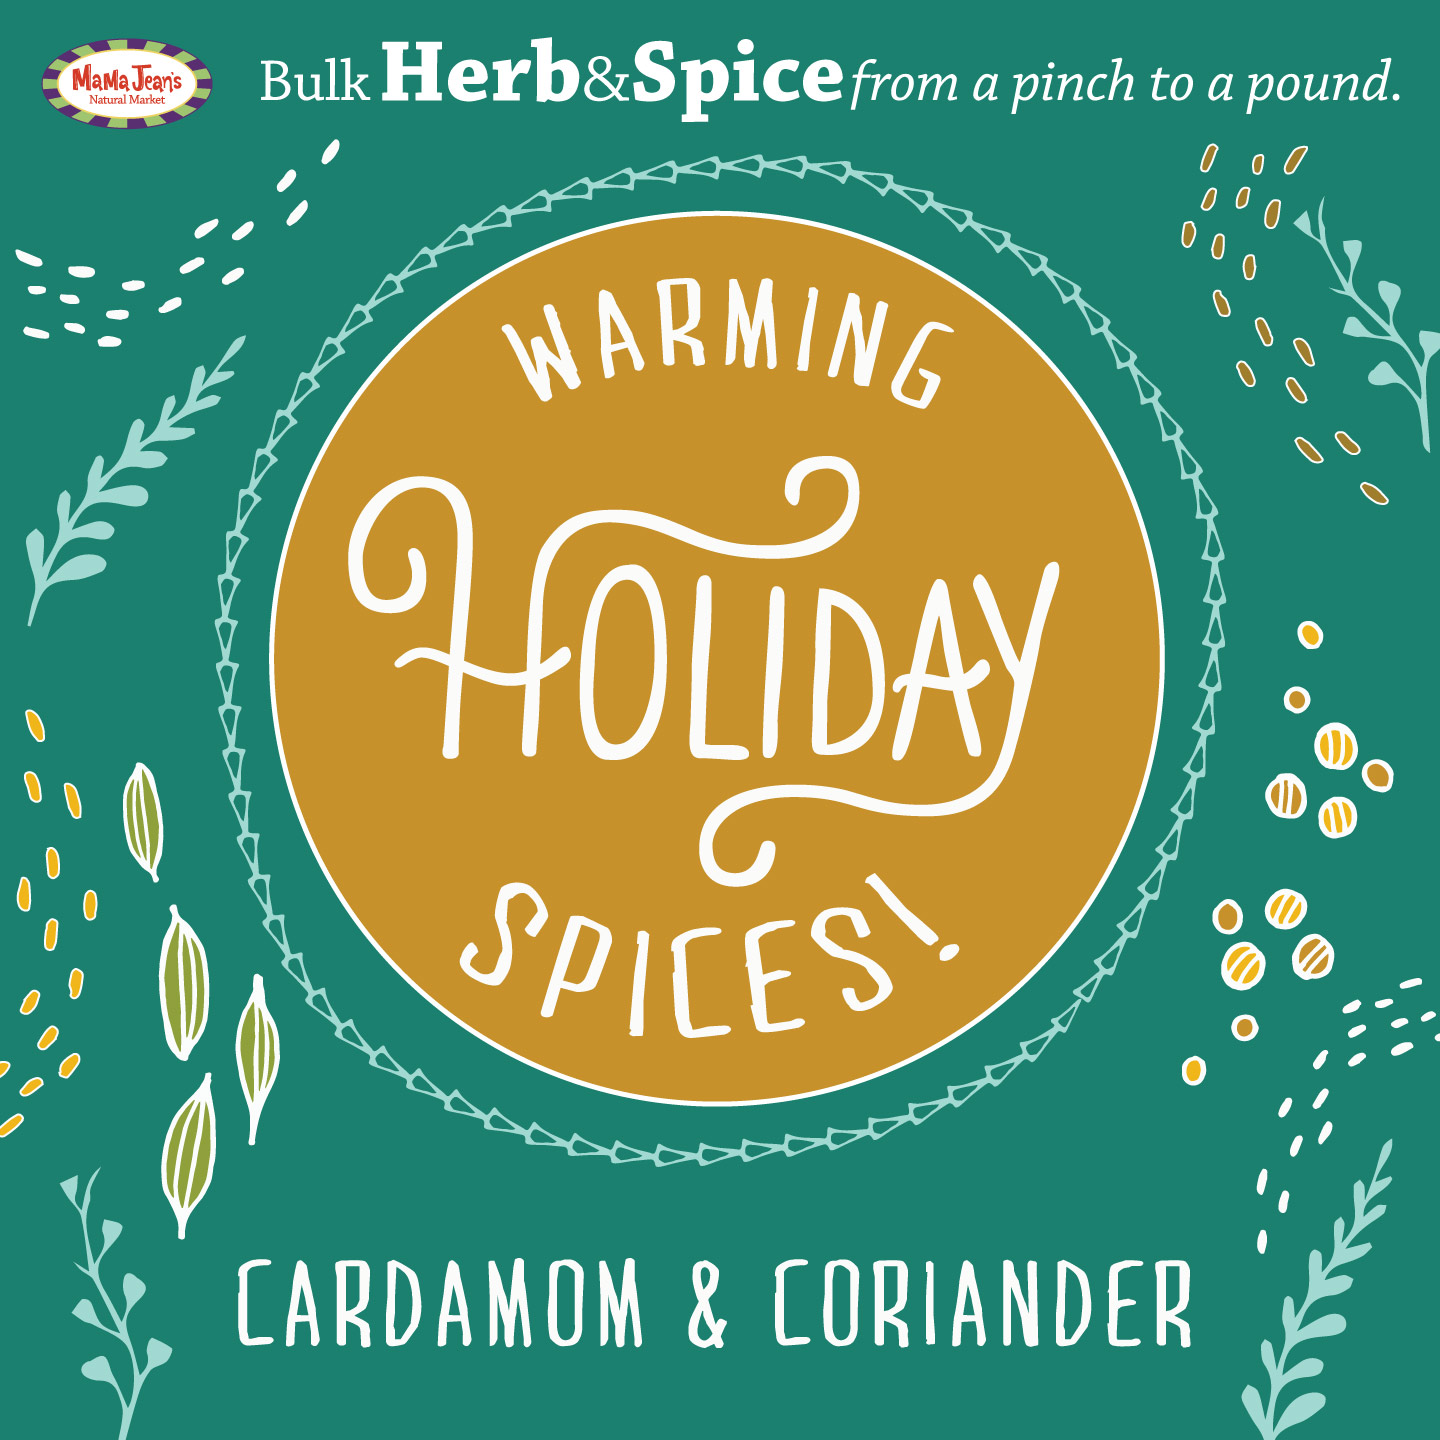 Herb & Spice Coriander and Cardamom